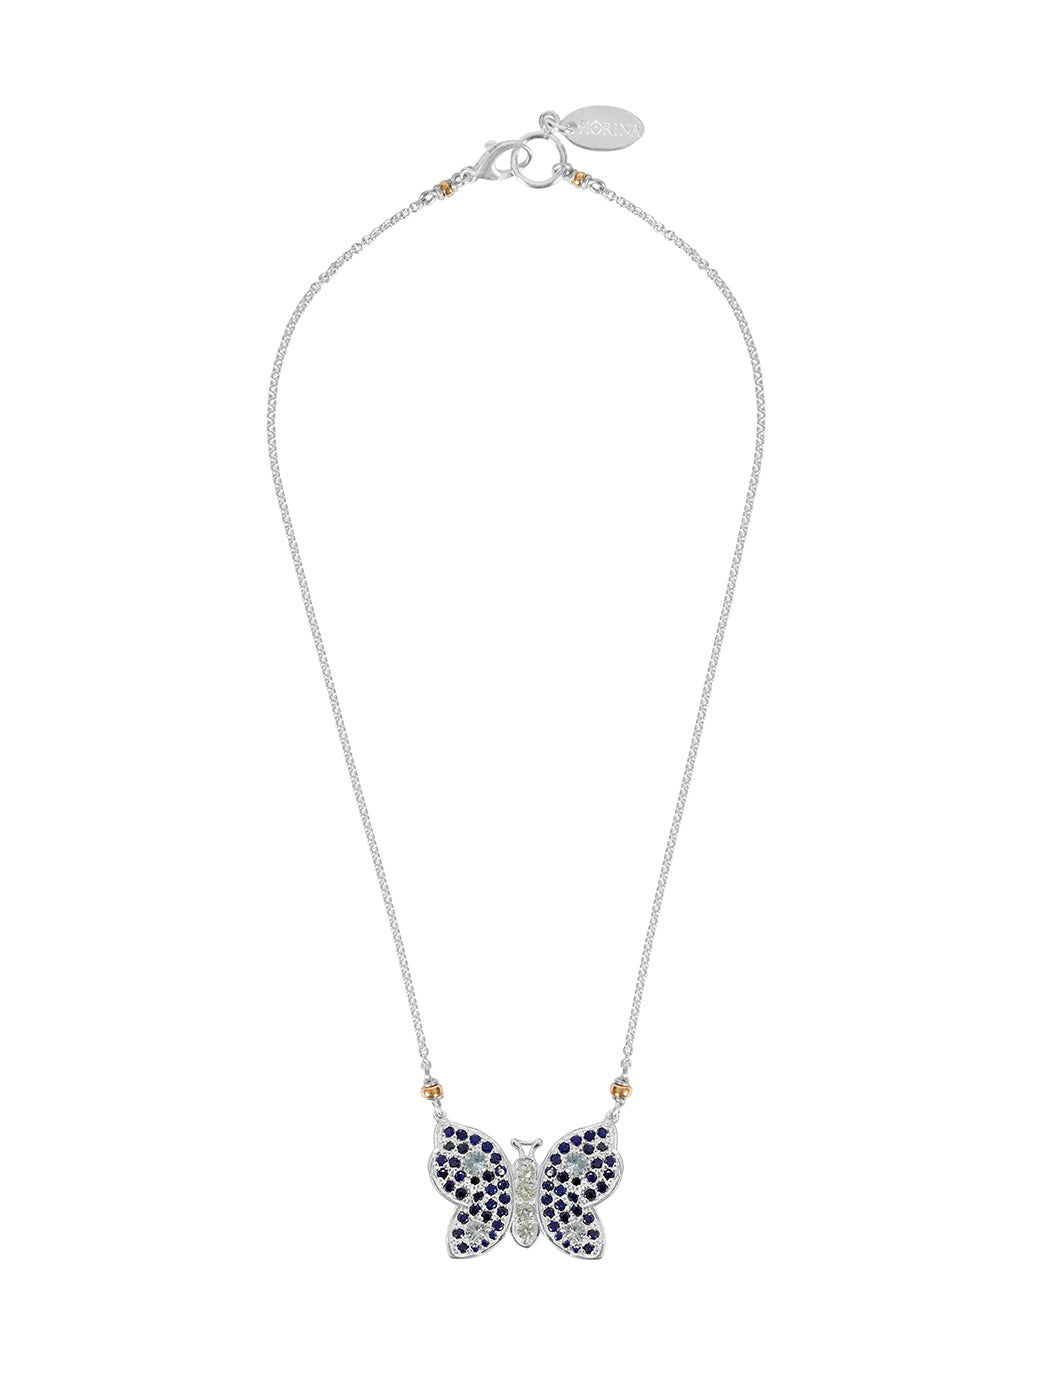 Fiorina Jewellery La Vie Butterfly Sapphire Necklace